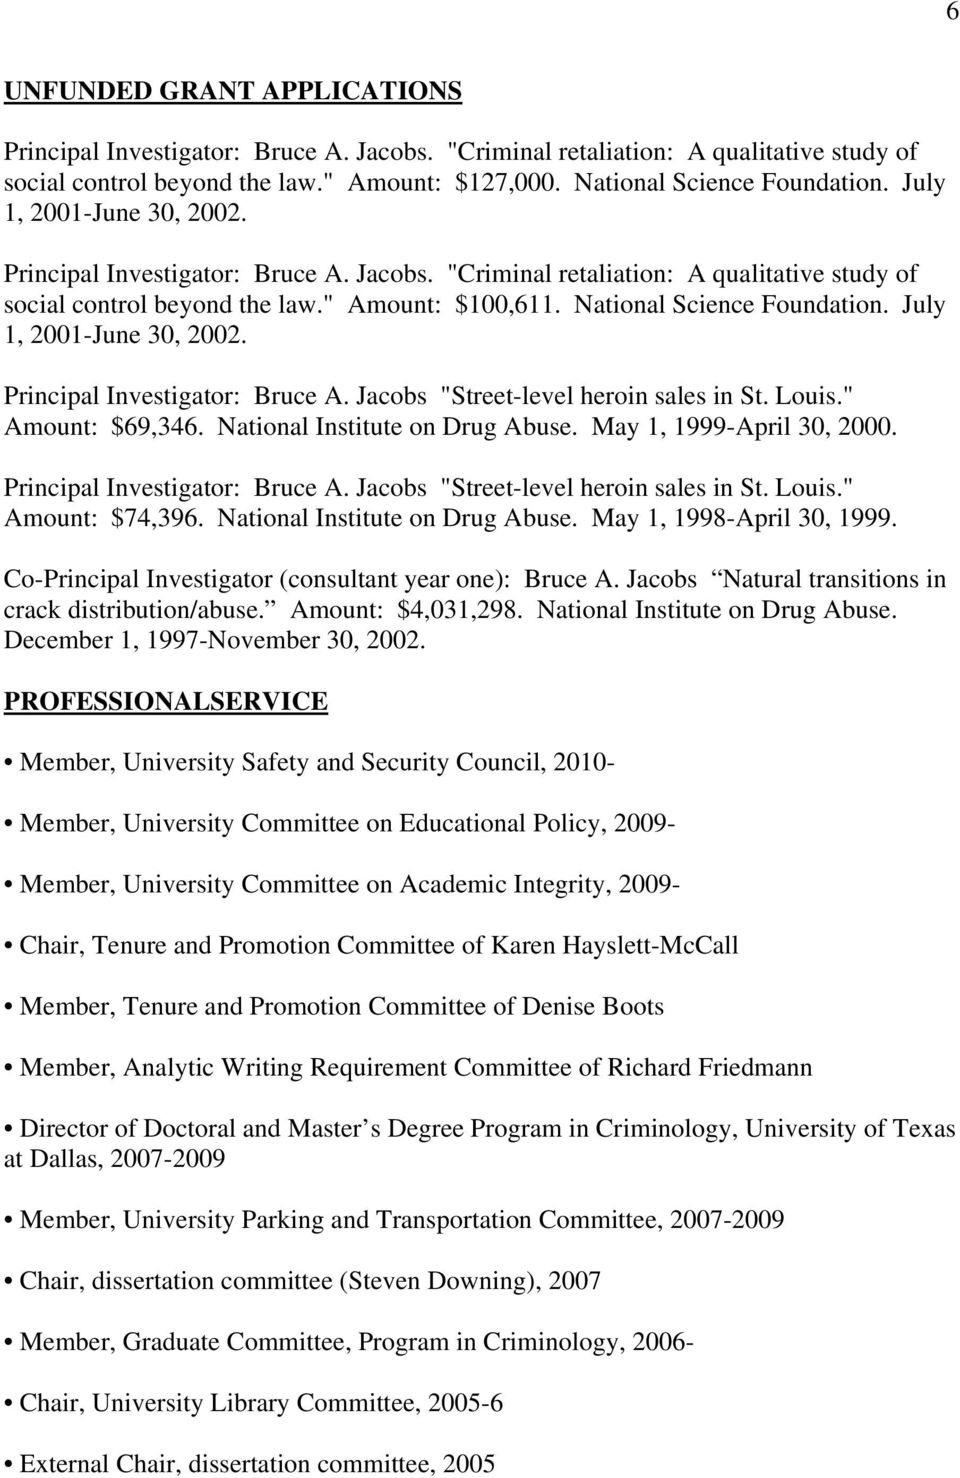 "July 1, 2001-June 30, 2002. Principal Investigator: Bruce A. Jacobs ""Street-level heroin sales in St. Louis."" Amount: $69,346. National Institute on Drug Abuse. May 1, 1999-April 30, 2000."